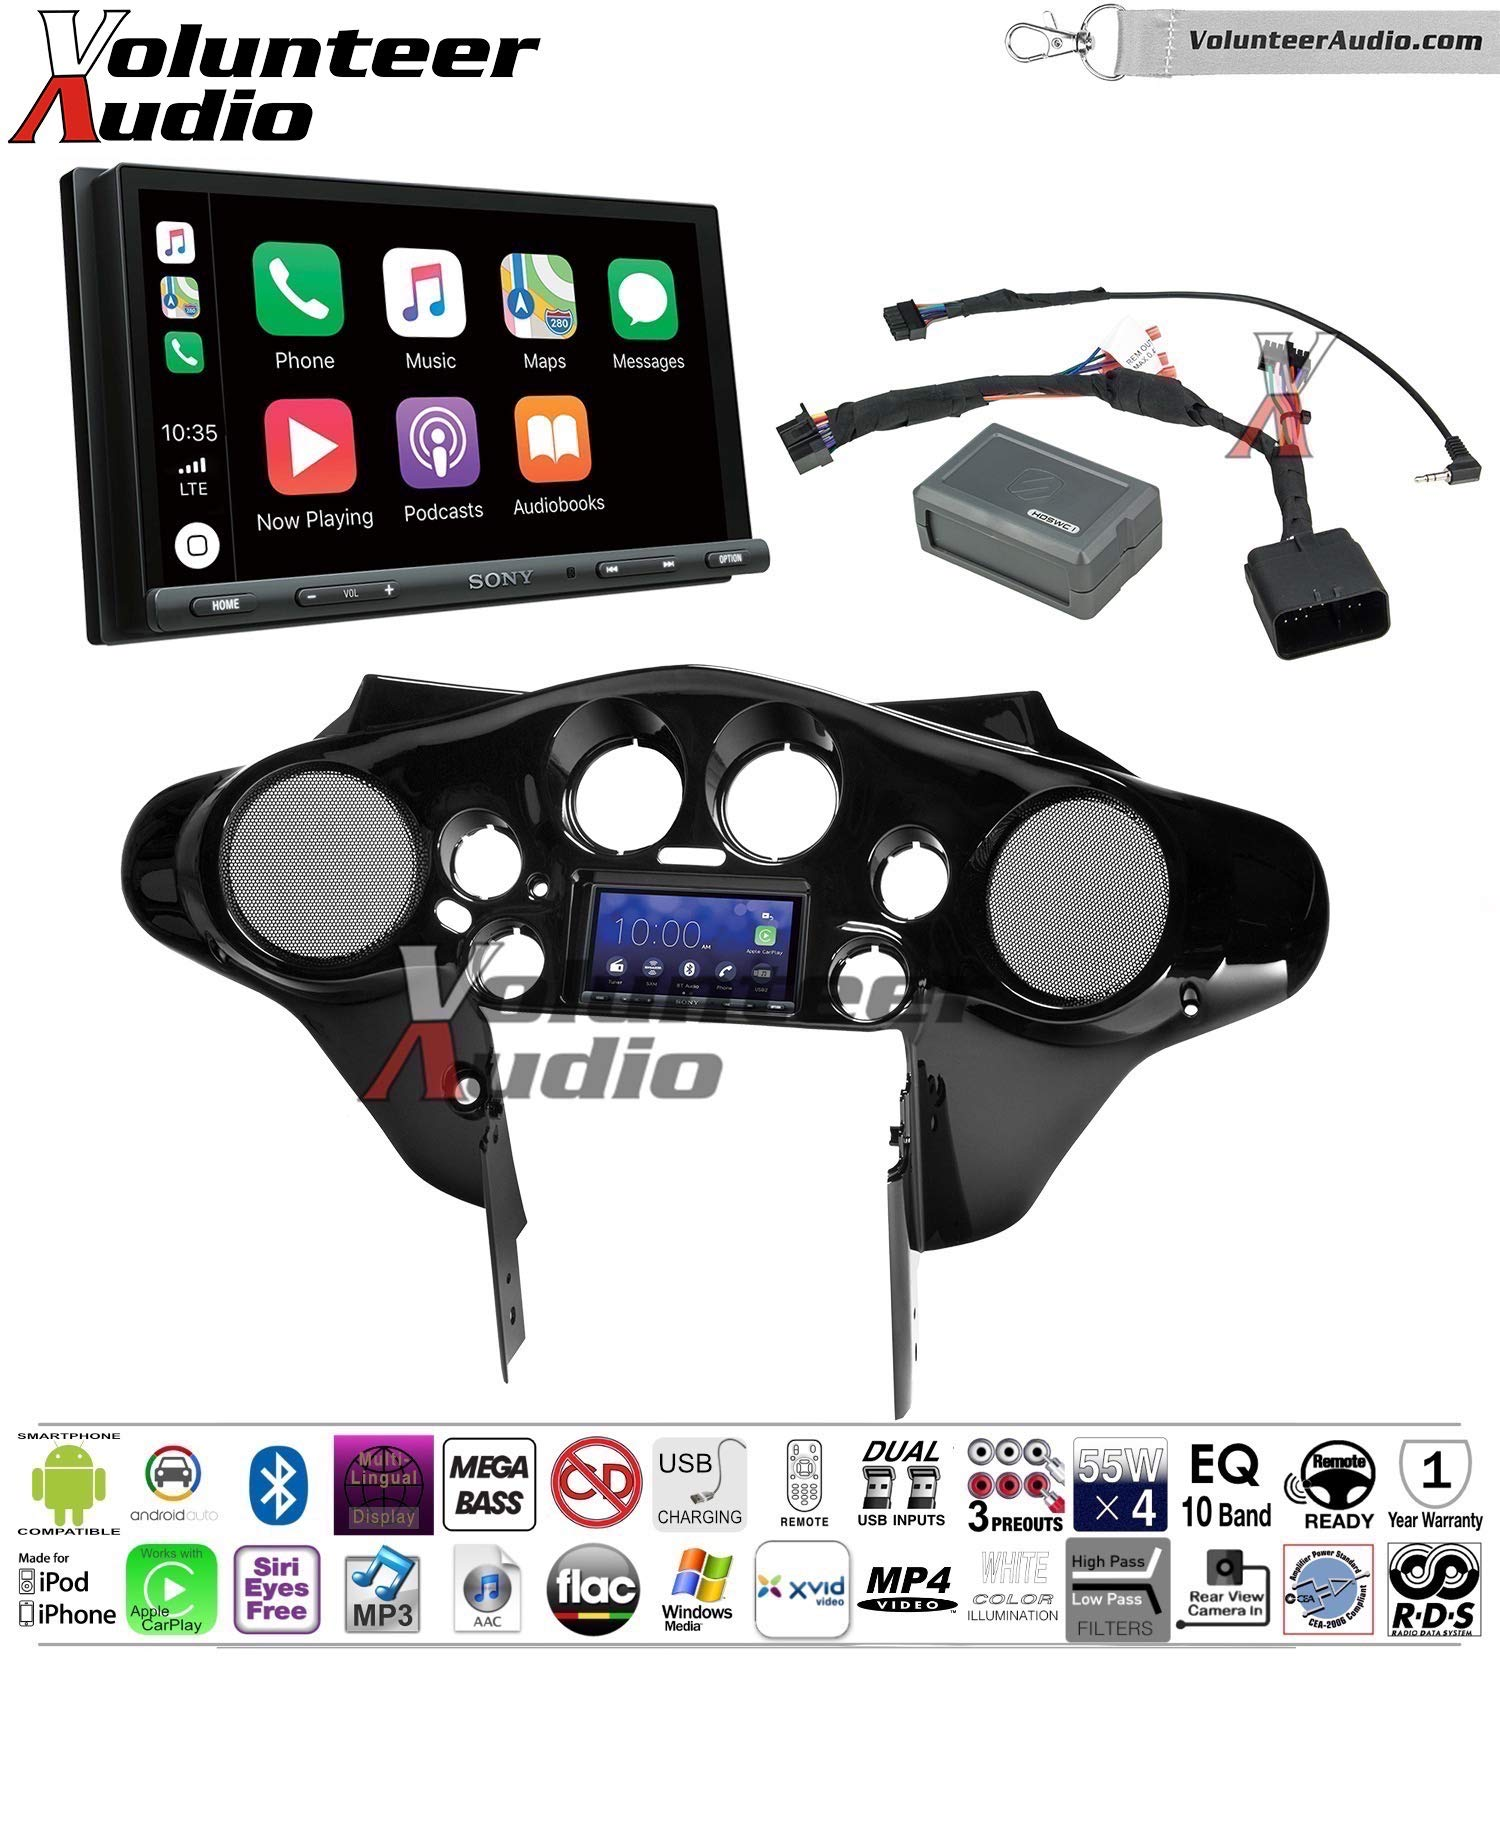 Sony XAV-AX5000 Double Din 7'' Touch Screen w/ Apple CarPlay, Android Auto, Bluetooth Install Kit for 98-13 Harley Davidson Batwing Fairing, Non-Road Glide Models Factory Matched Harley Vivid Black